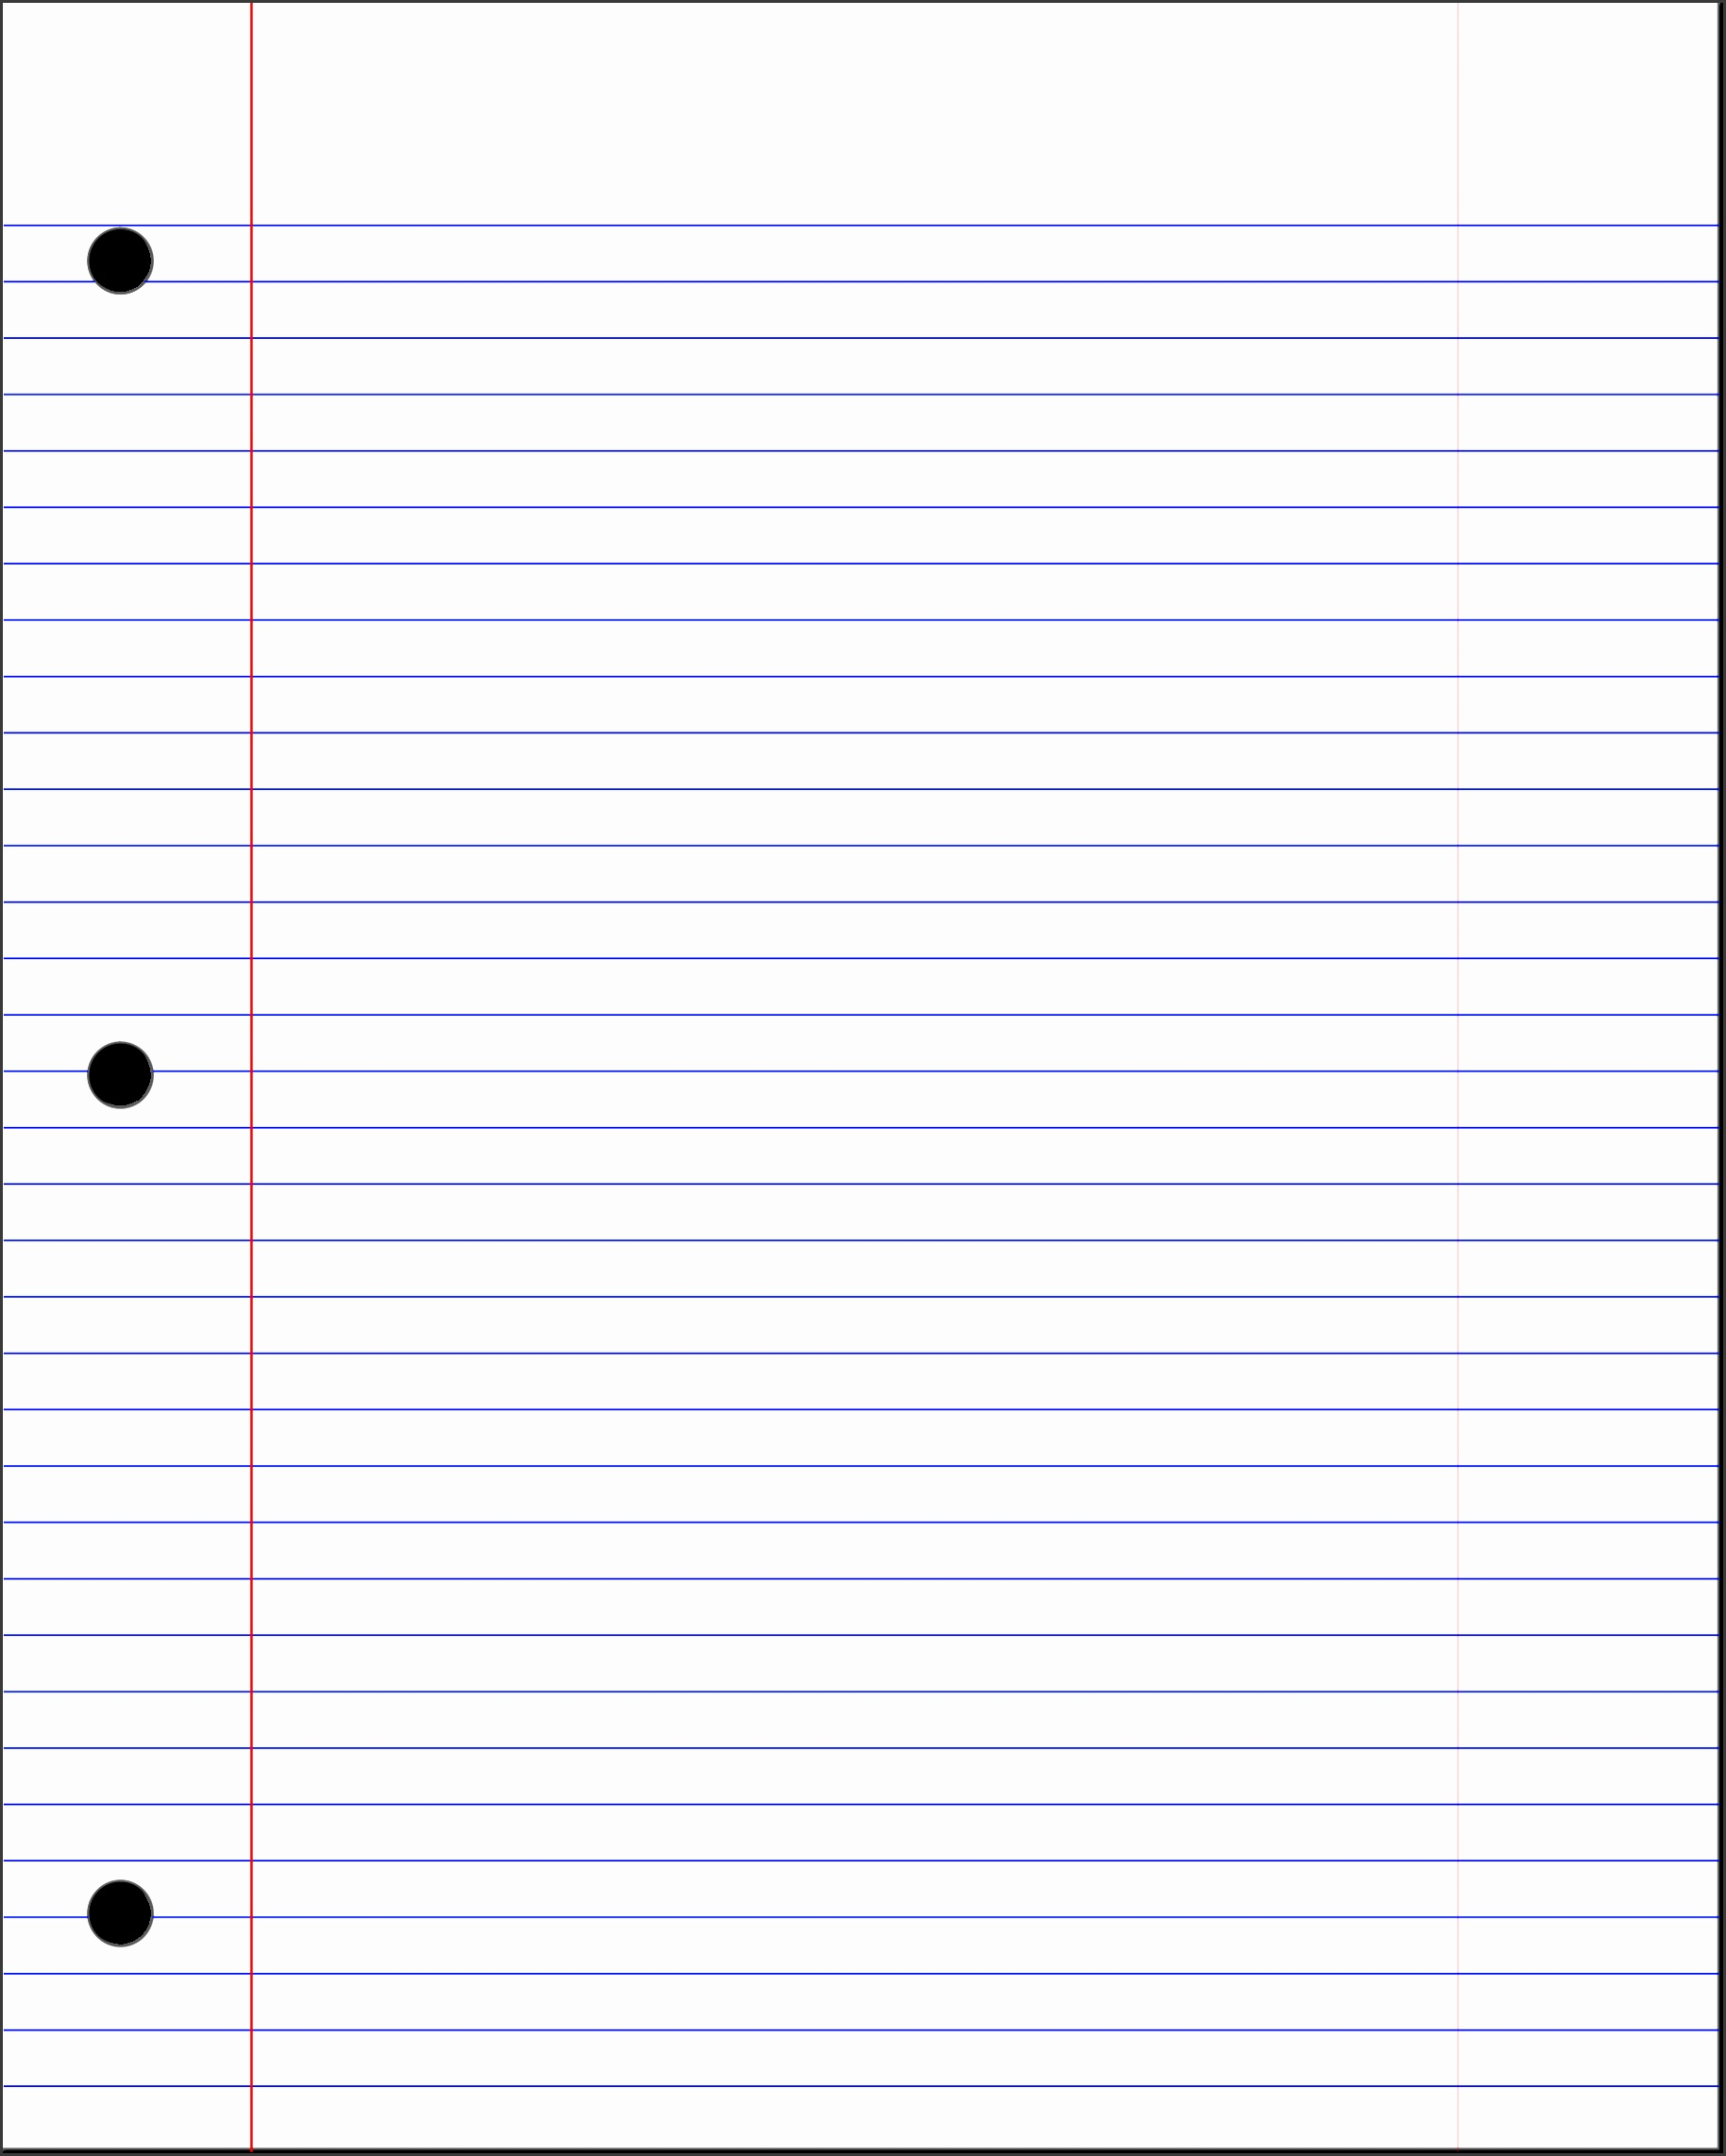 Lined Paper Template Free A4 Lined Paper Template PDF college ruled lined paper template